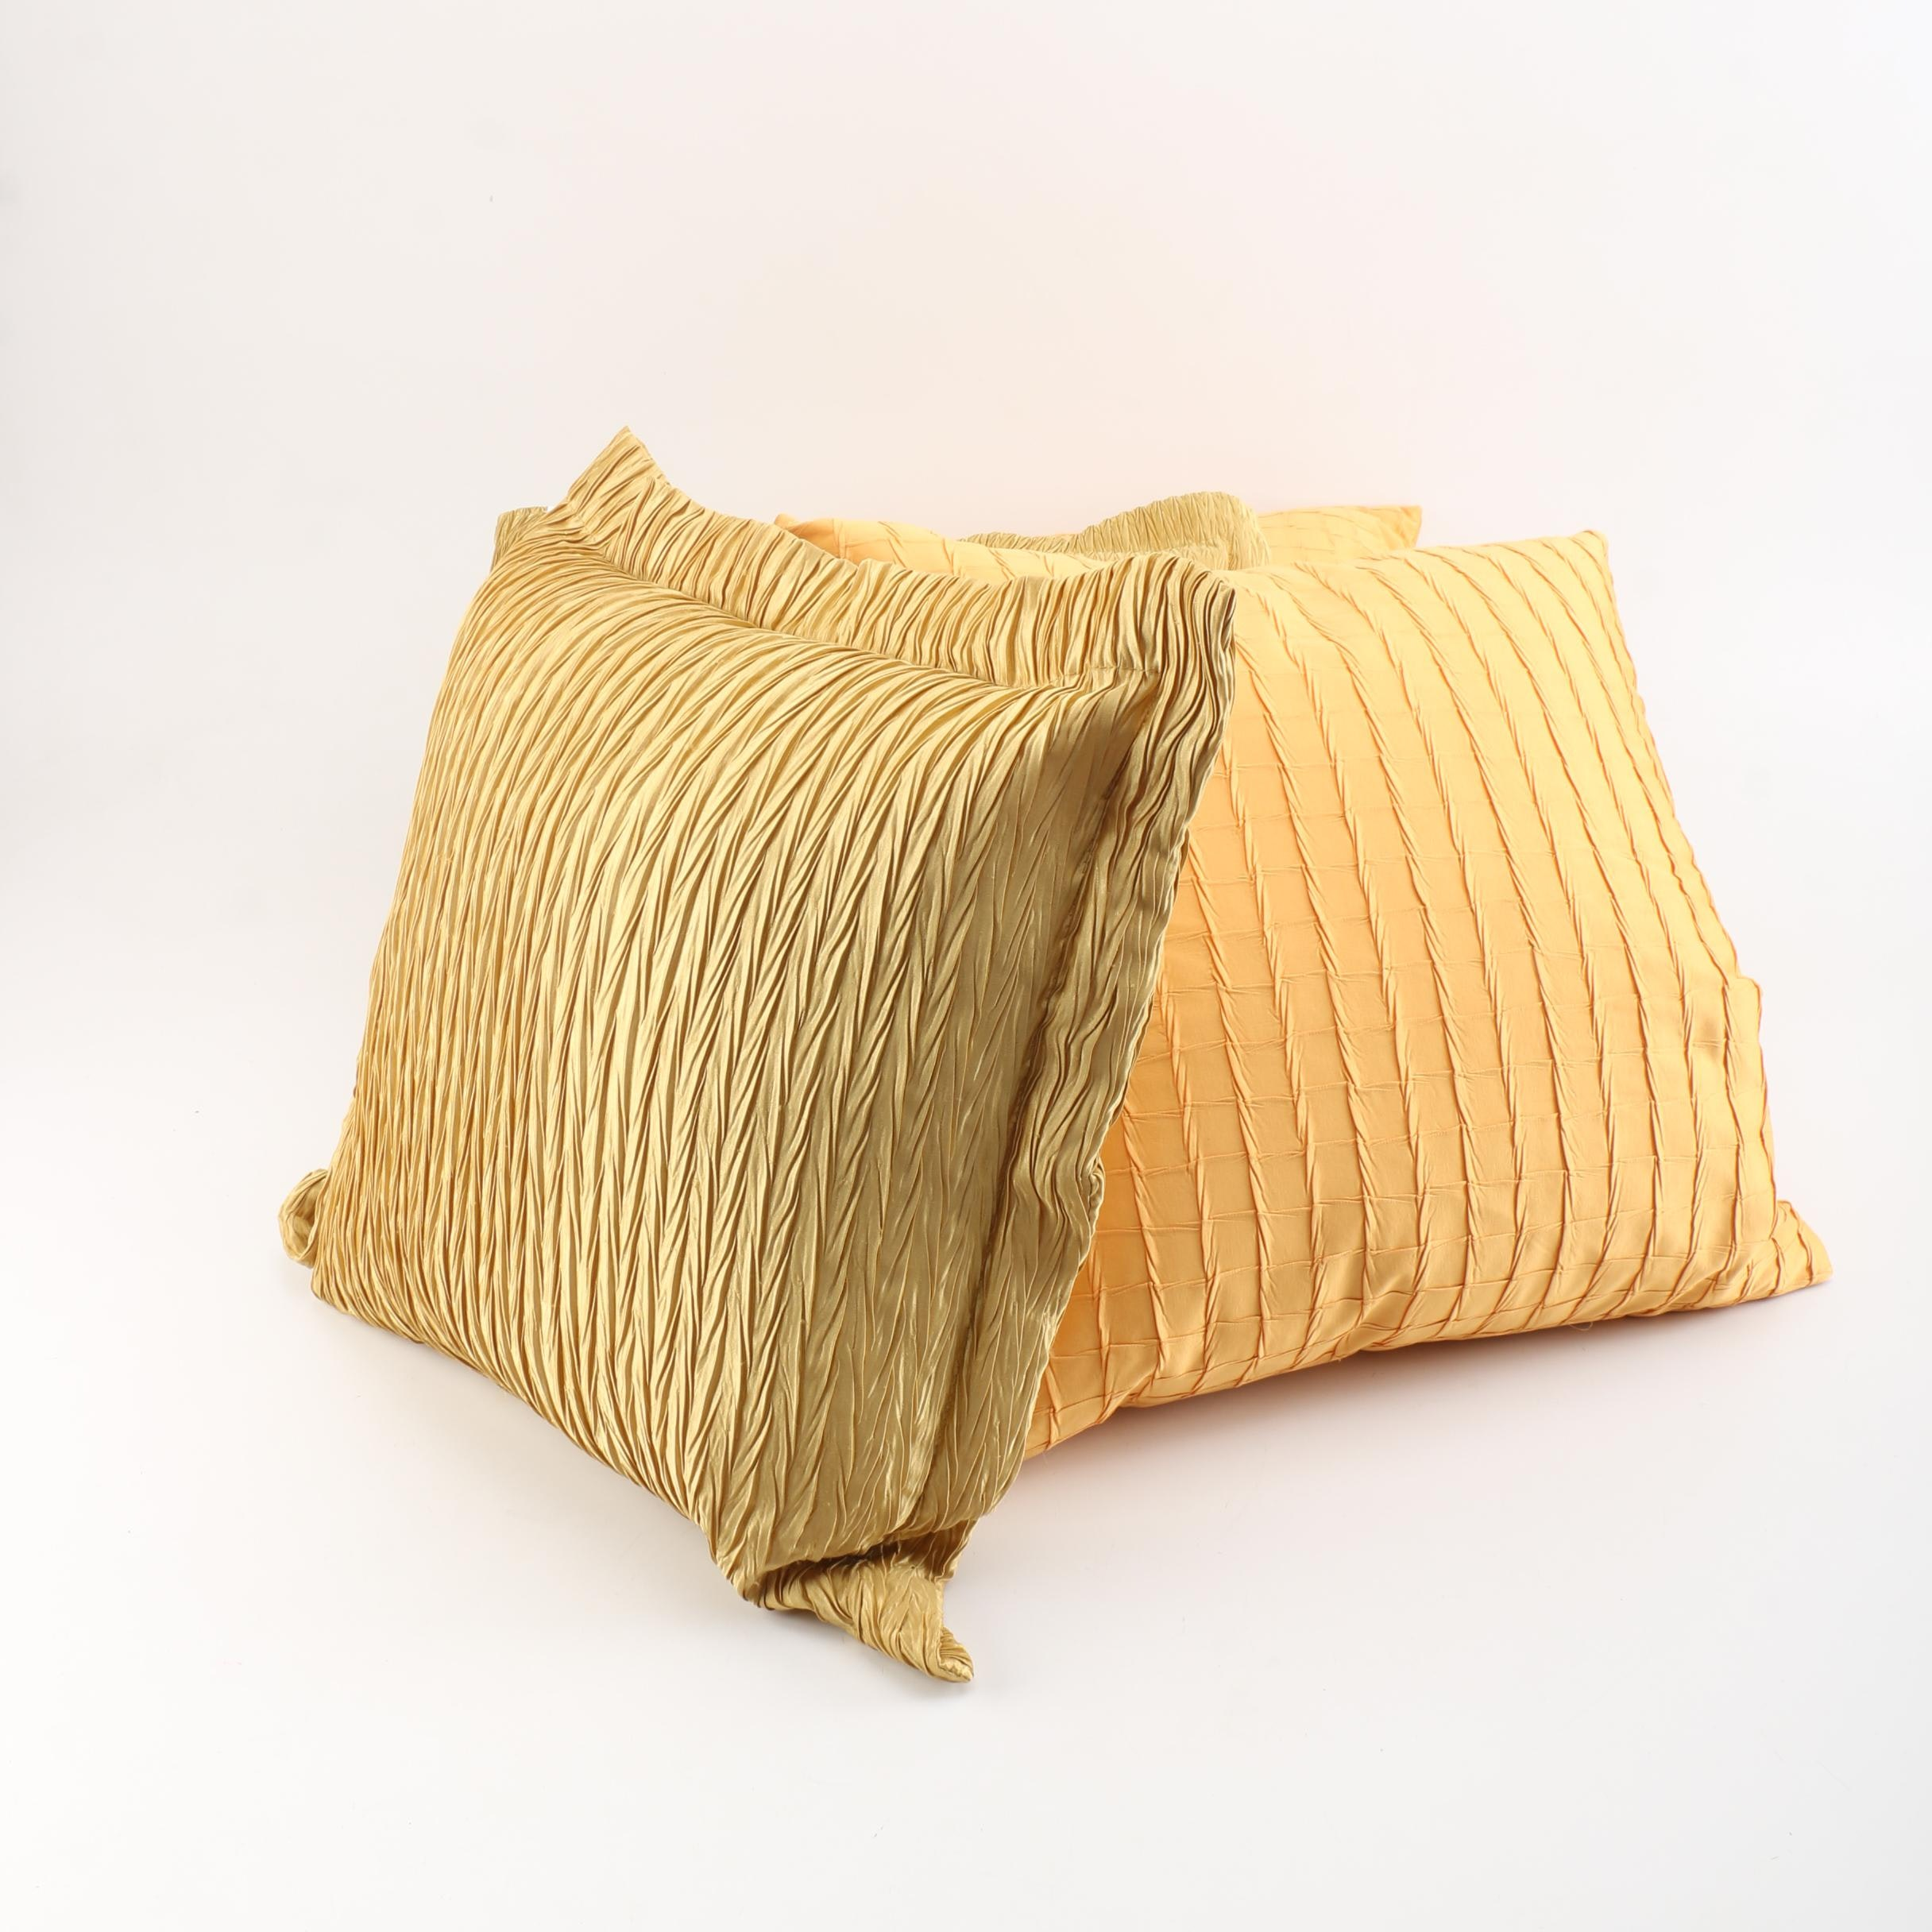 Newport Textured Yellow Accent Pillows